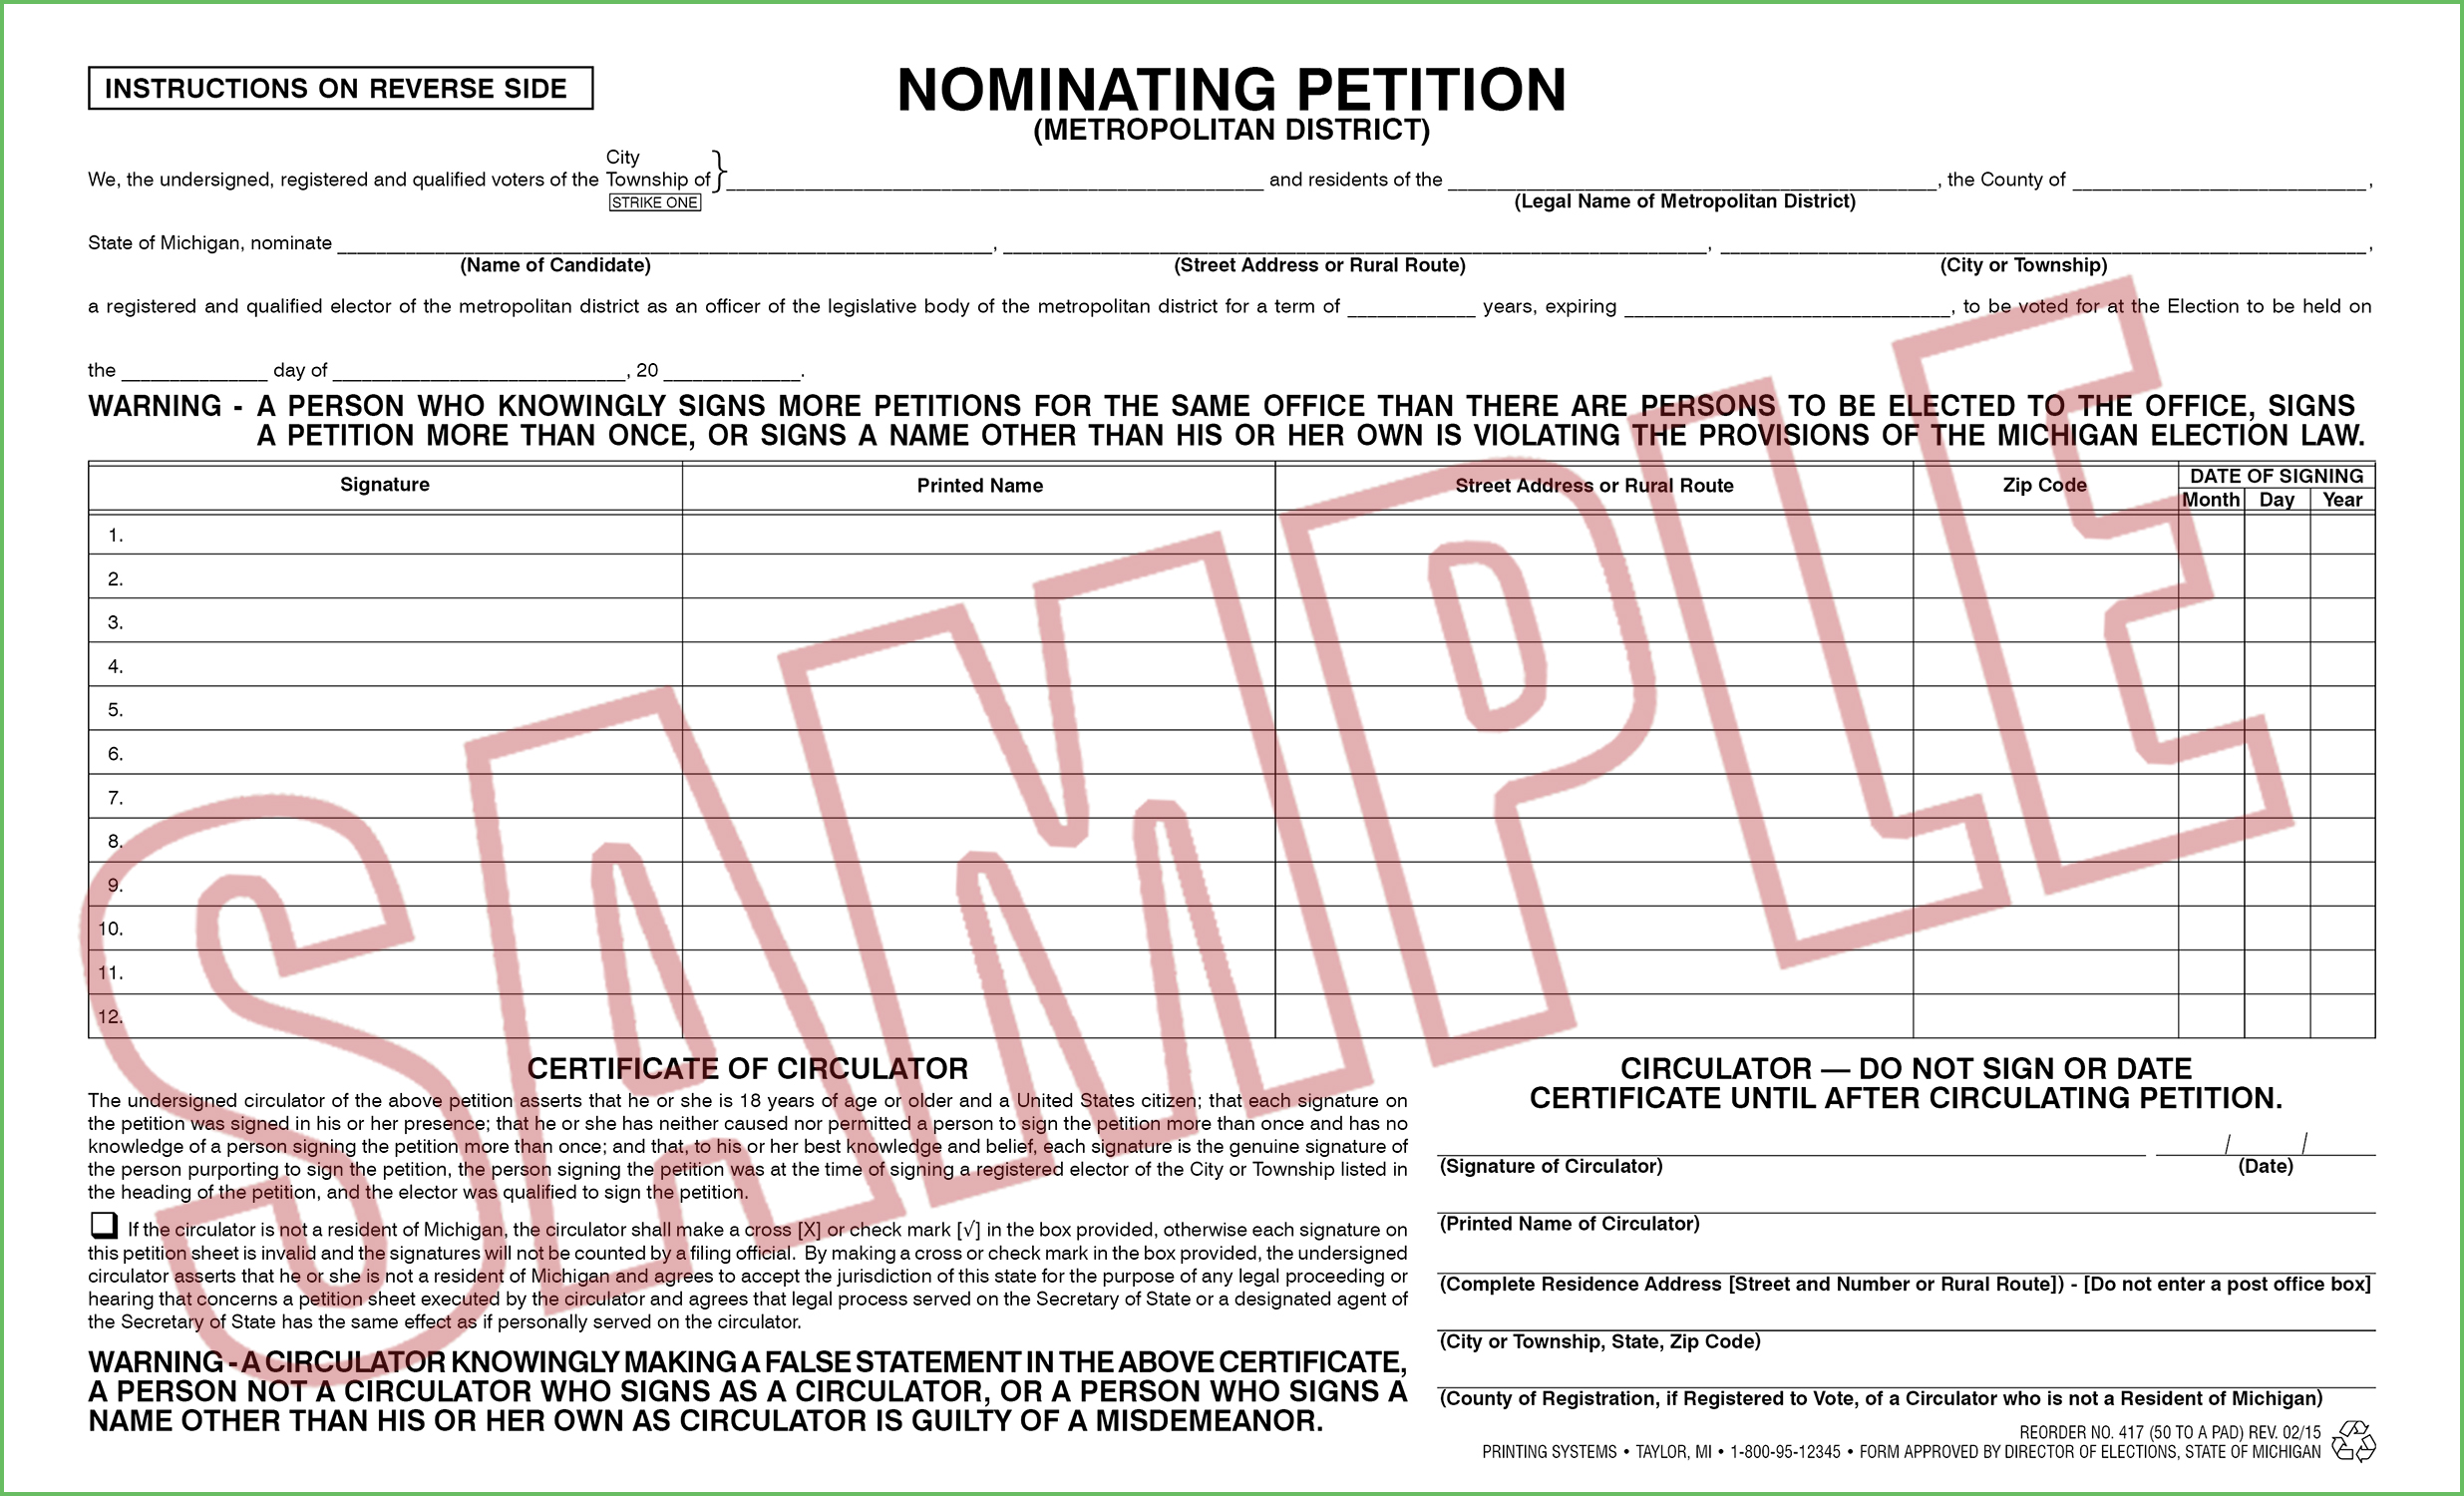 417 Nominating Petition - Metropolitan District (50 per pad)